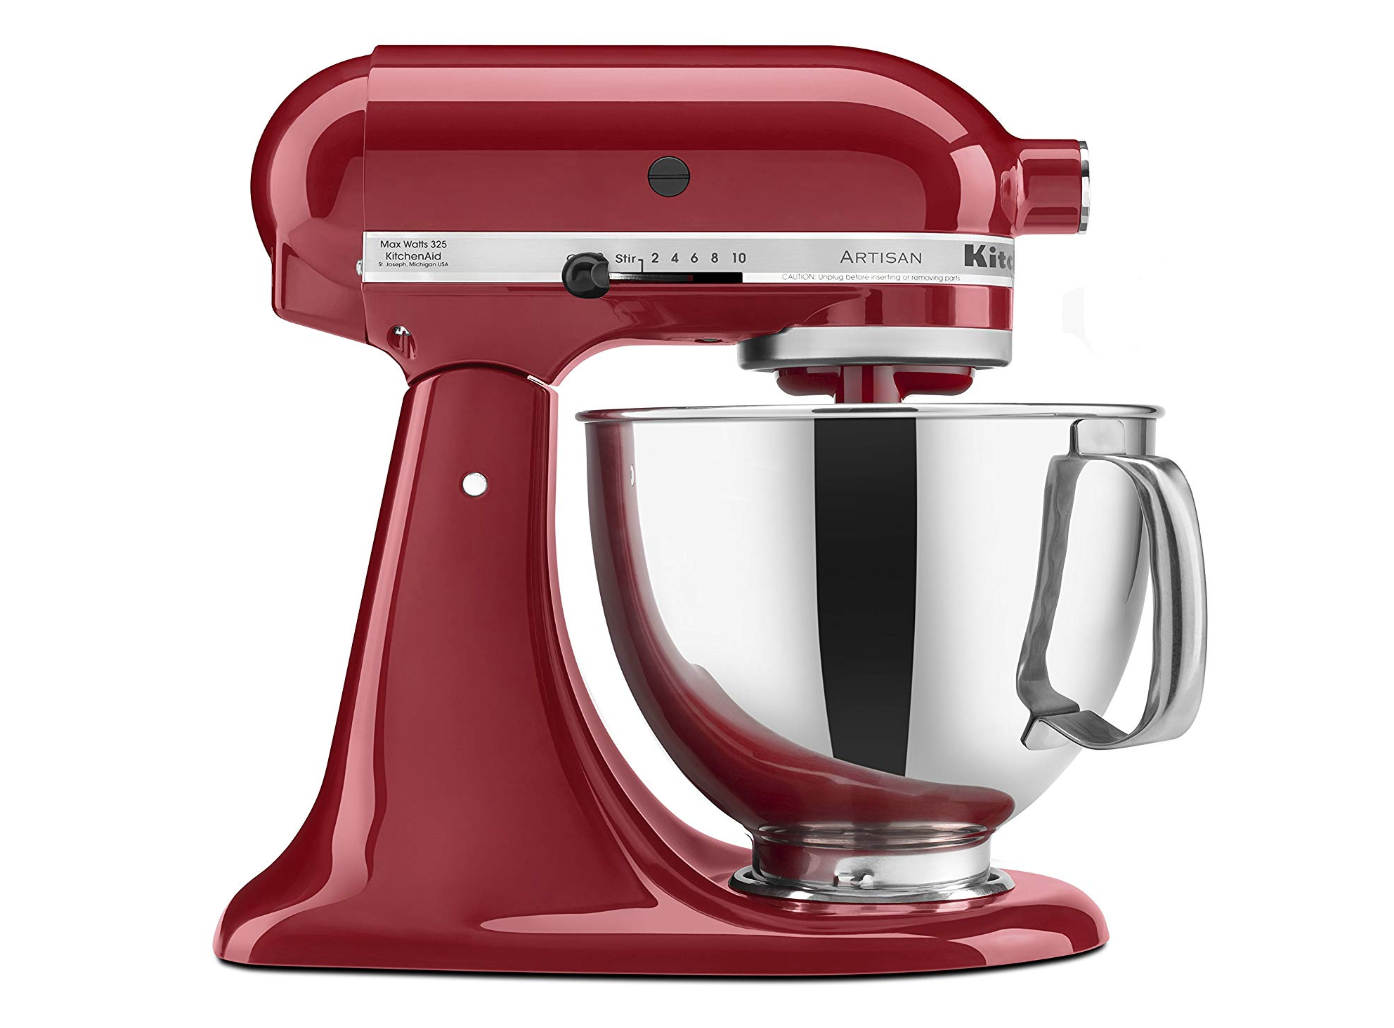 Empire Red kitchenaid mixer